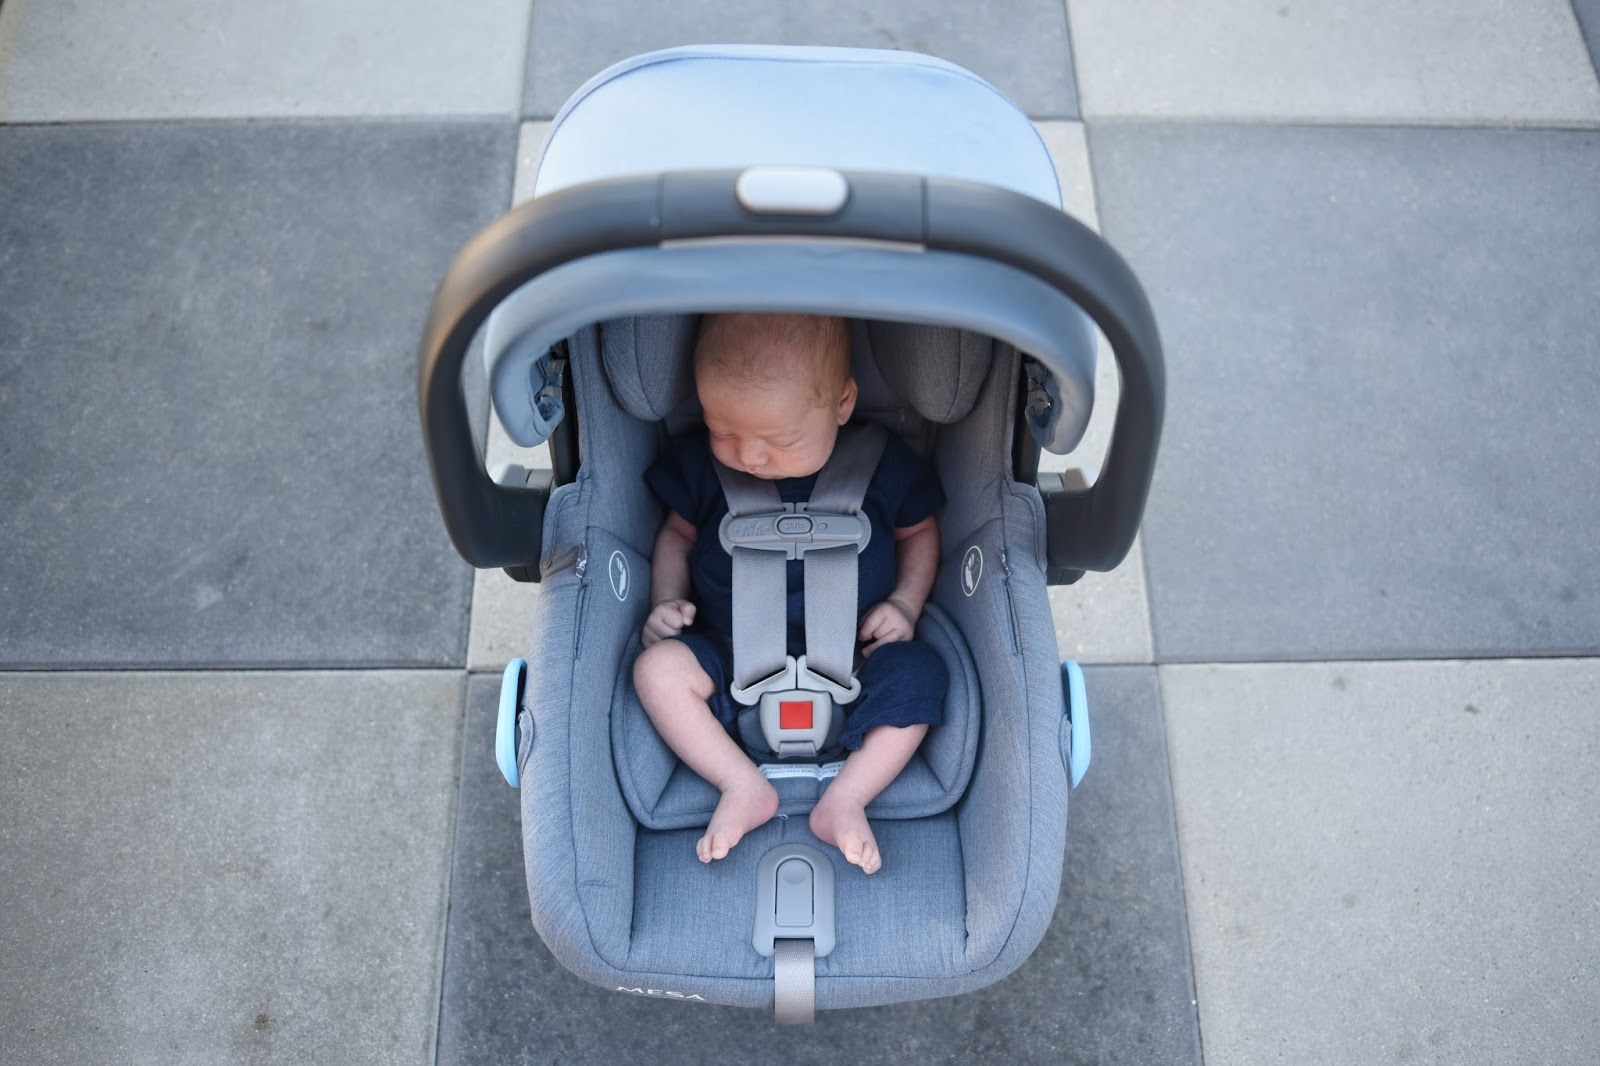 I Shared Yesterday About My Favorite Baby Gear For Three Kiddos And One Of Items Is Our UPPAbaby MESA Infant Carseat It Actually Safety